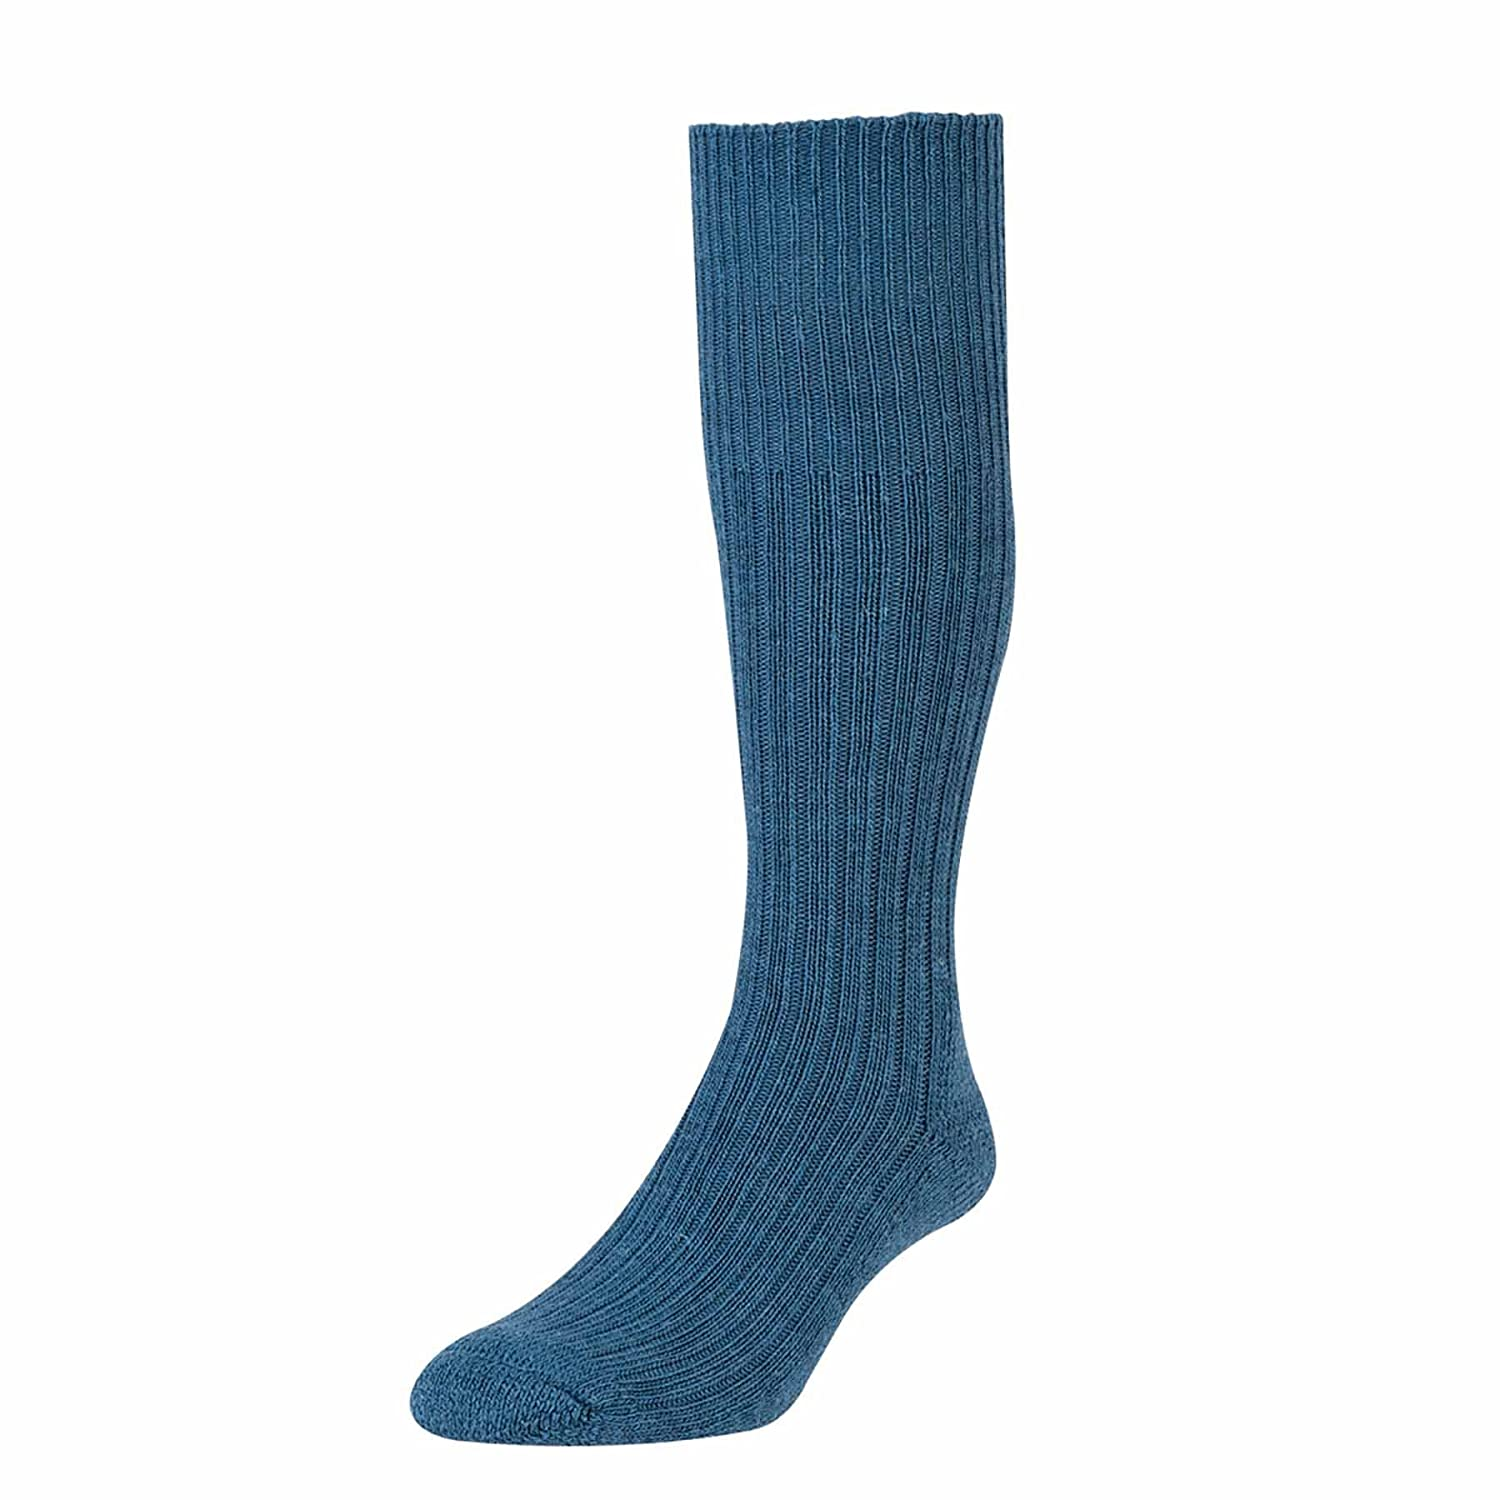 HJ Hall Commando HJ3000 Wool Rich Military Boot Walking Socks / UK Sizes 3-6, 6-11 and 11-13 / Black, Olive, Airforce, Granary and Navy